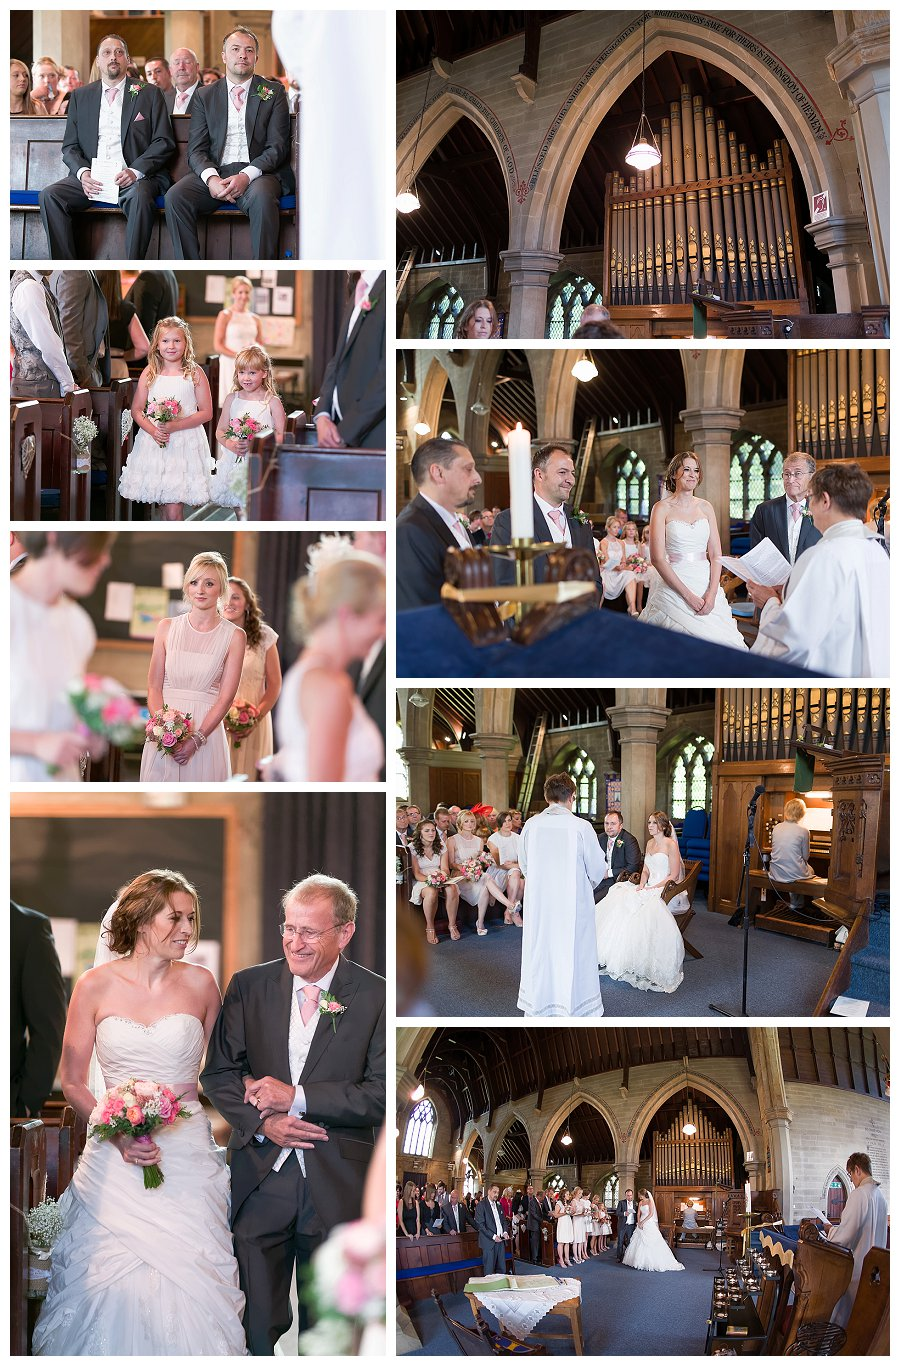 wedding photography Meltham, wedding photographer Christ Church Helme, papakata tipi wedding photography